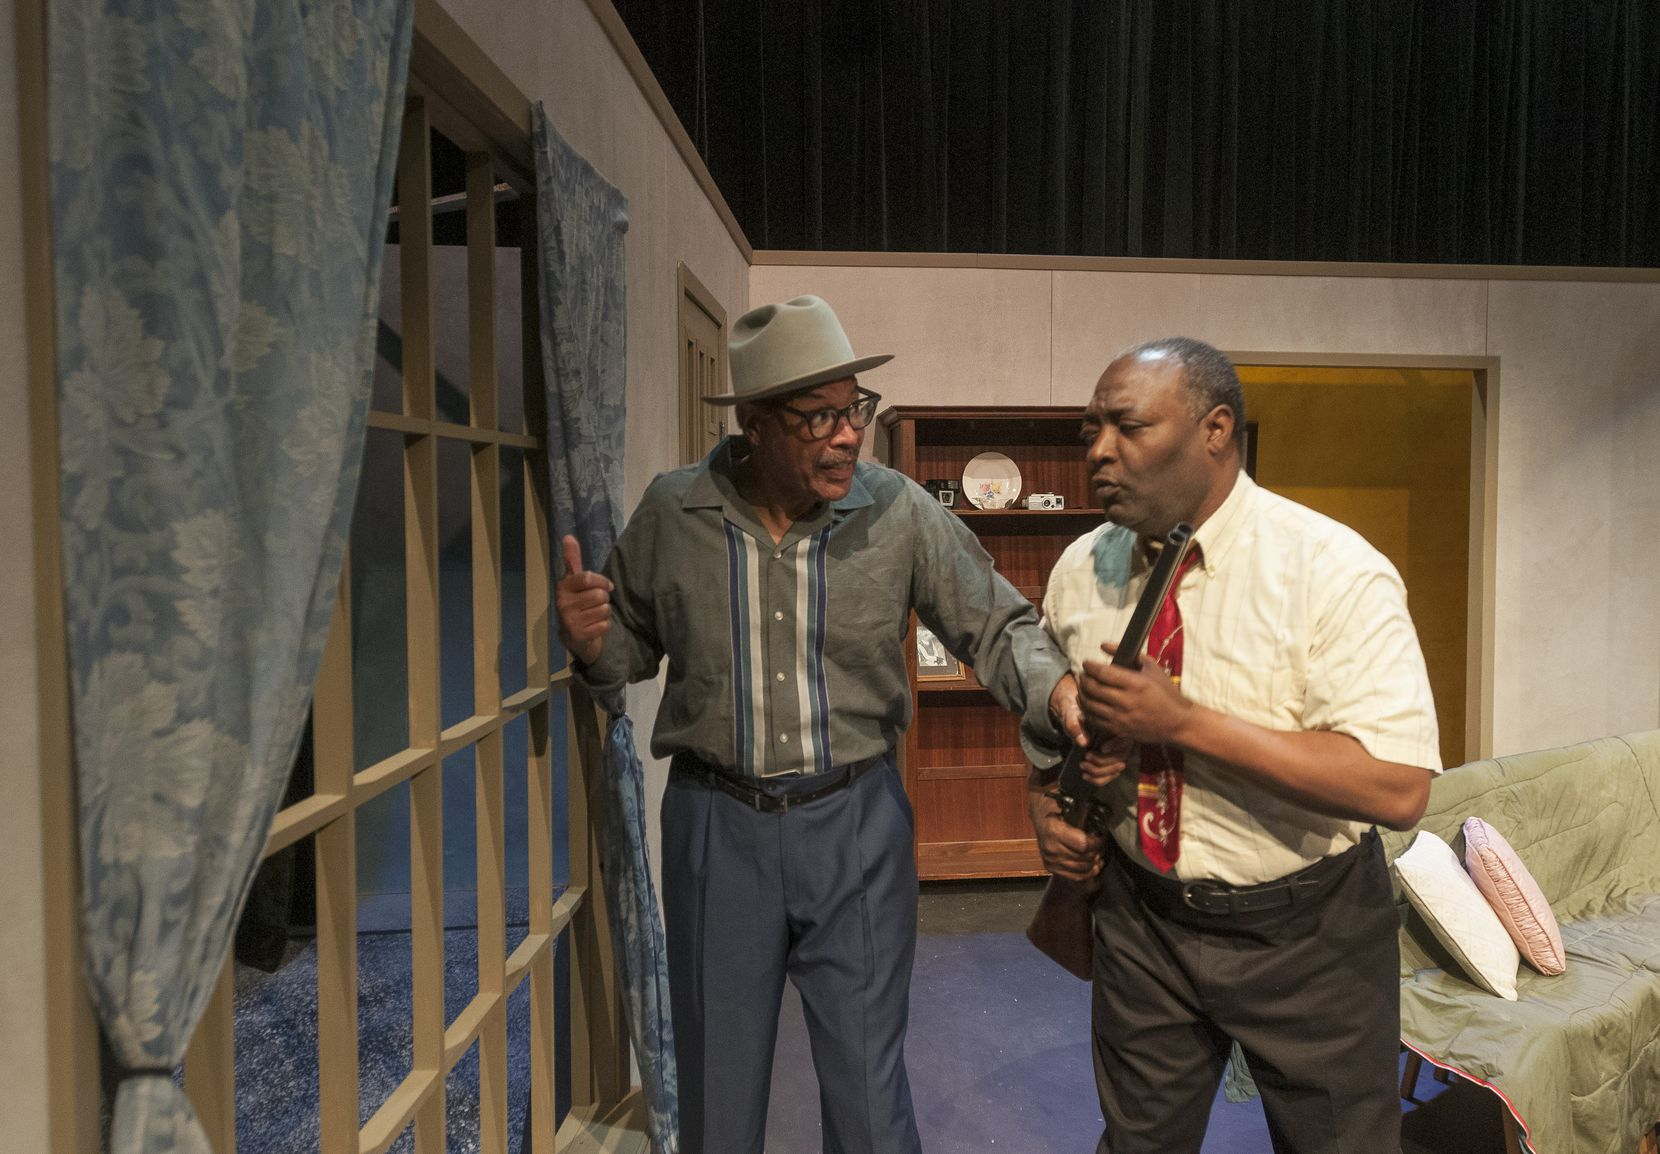 Tyrees Allen and Calvin Gabriel perform a scene from Mississippi Goddamn during rehearsal at the South Dallas Cultural Center in February 2015.